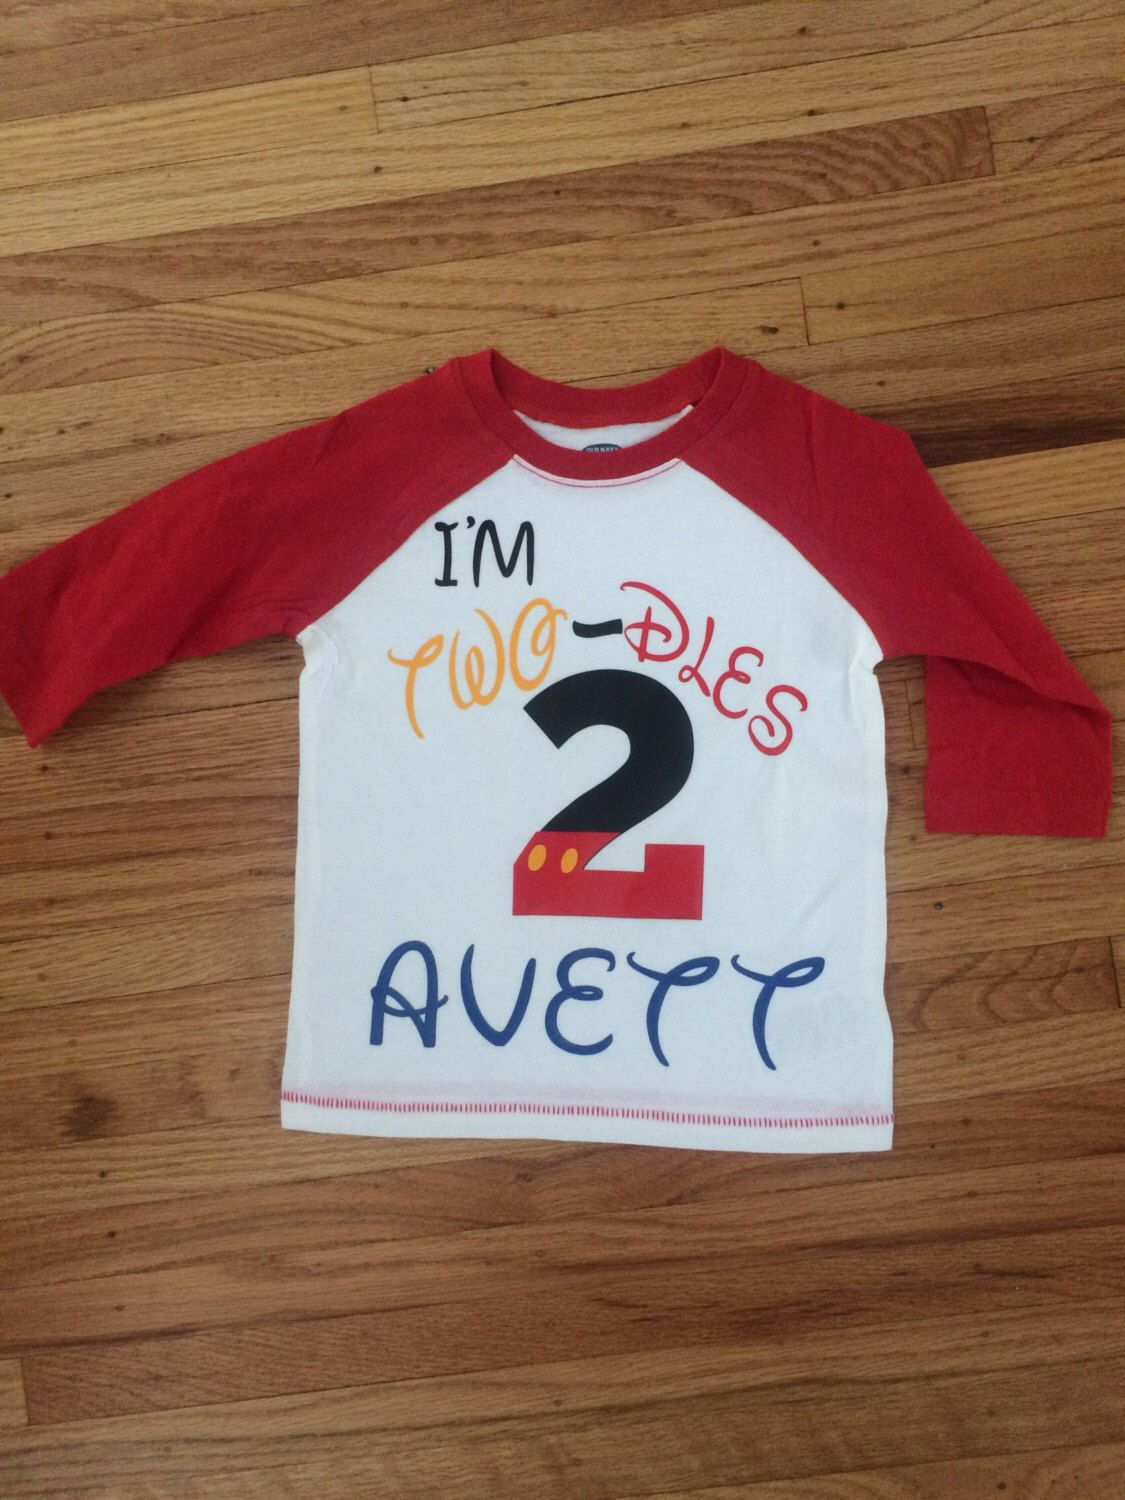 Im two dles mickey mouse inspired childrens birthday